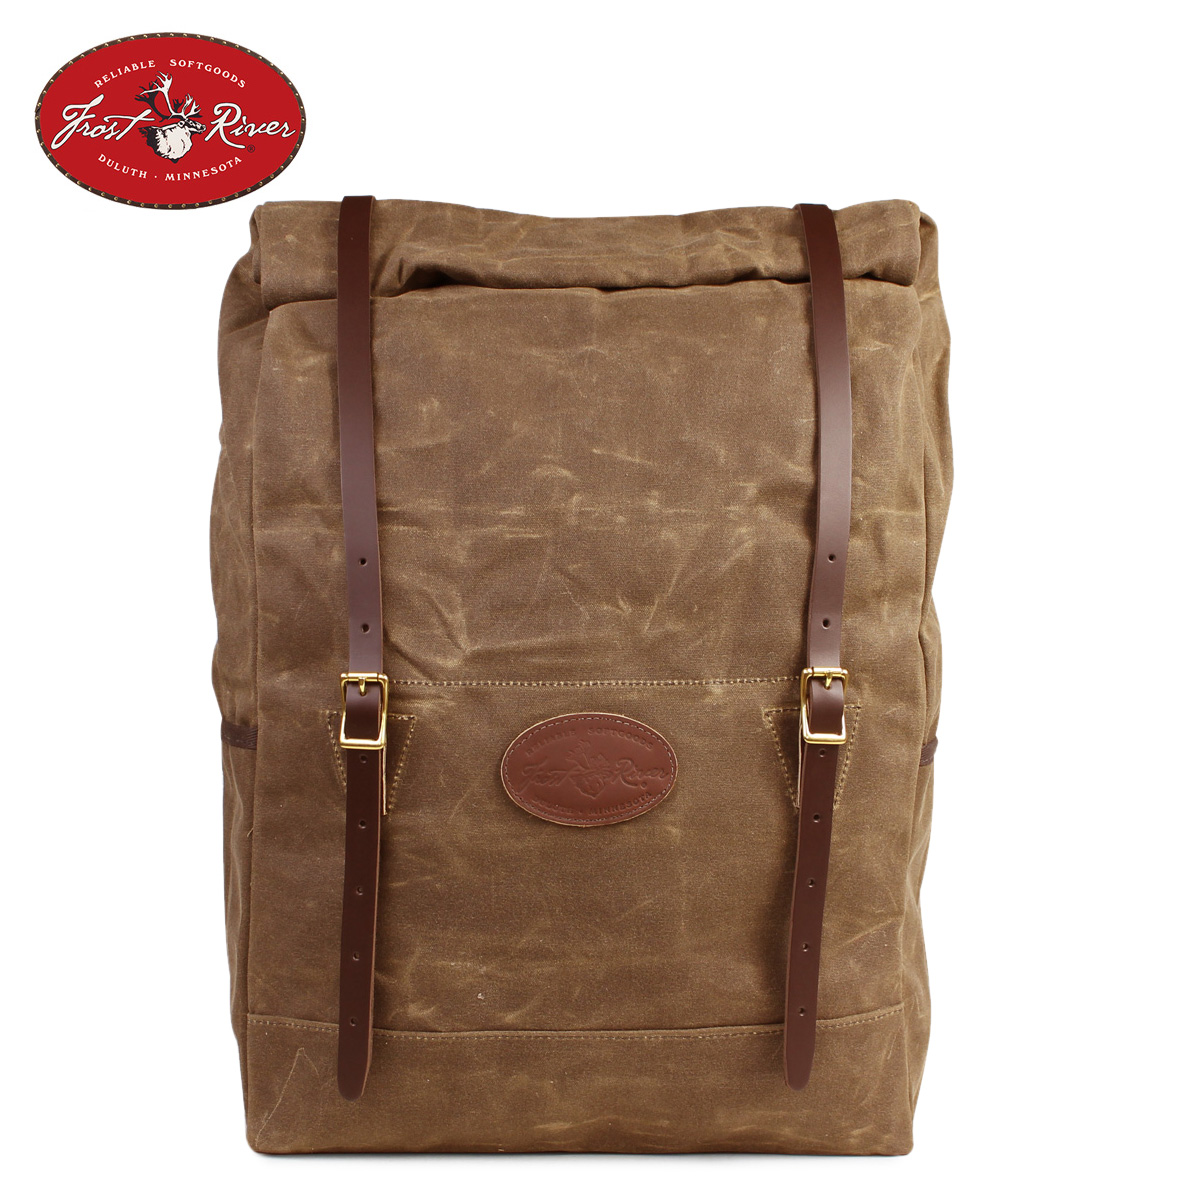 315716a555 Mens Leather Bags Etsy- Fenix Toulouse Handball